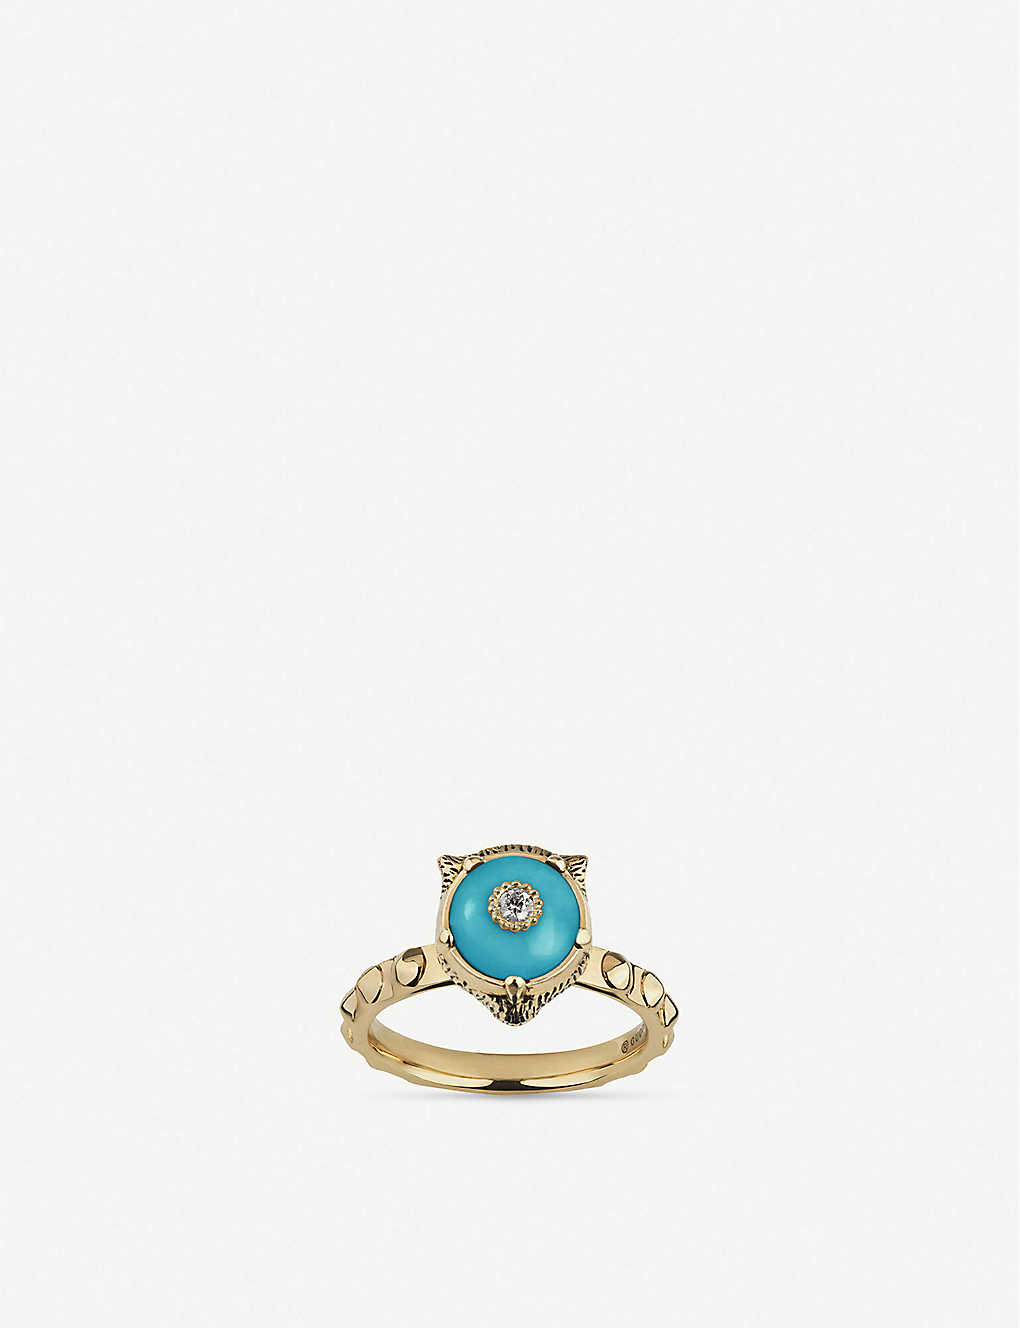 00a7b940d GUCCI Le Marché des Merveilles 18ct yellow-gold, turquoise and diamond ring